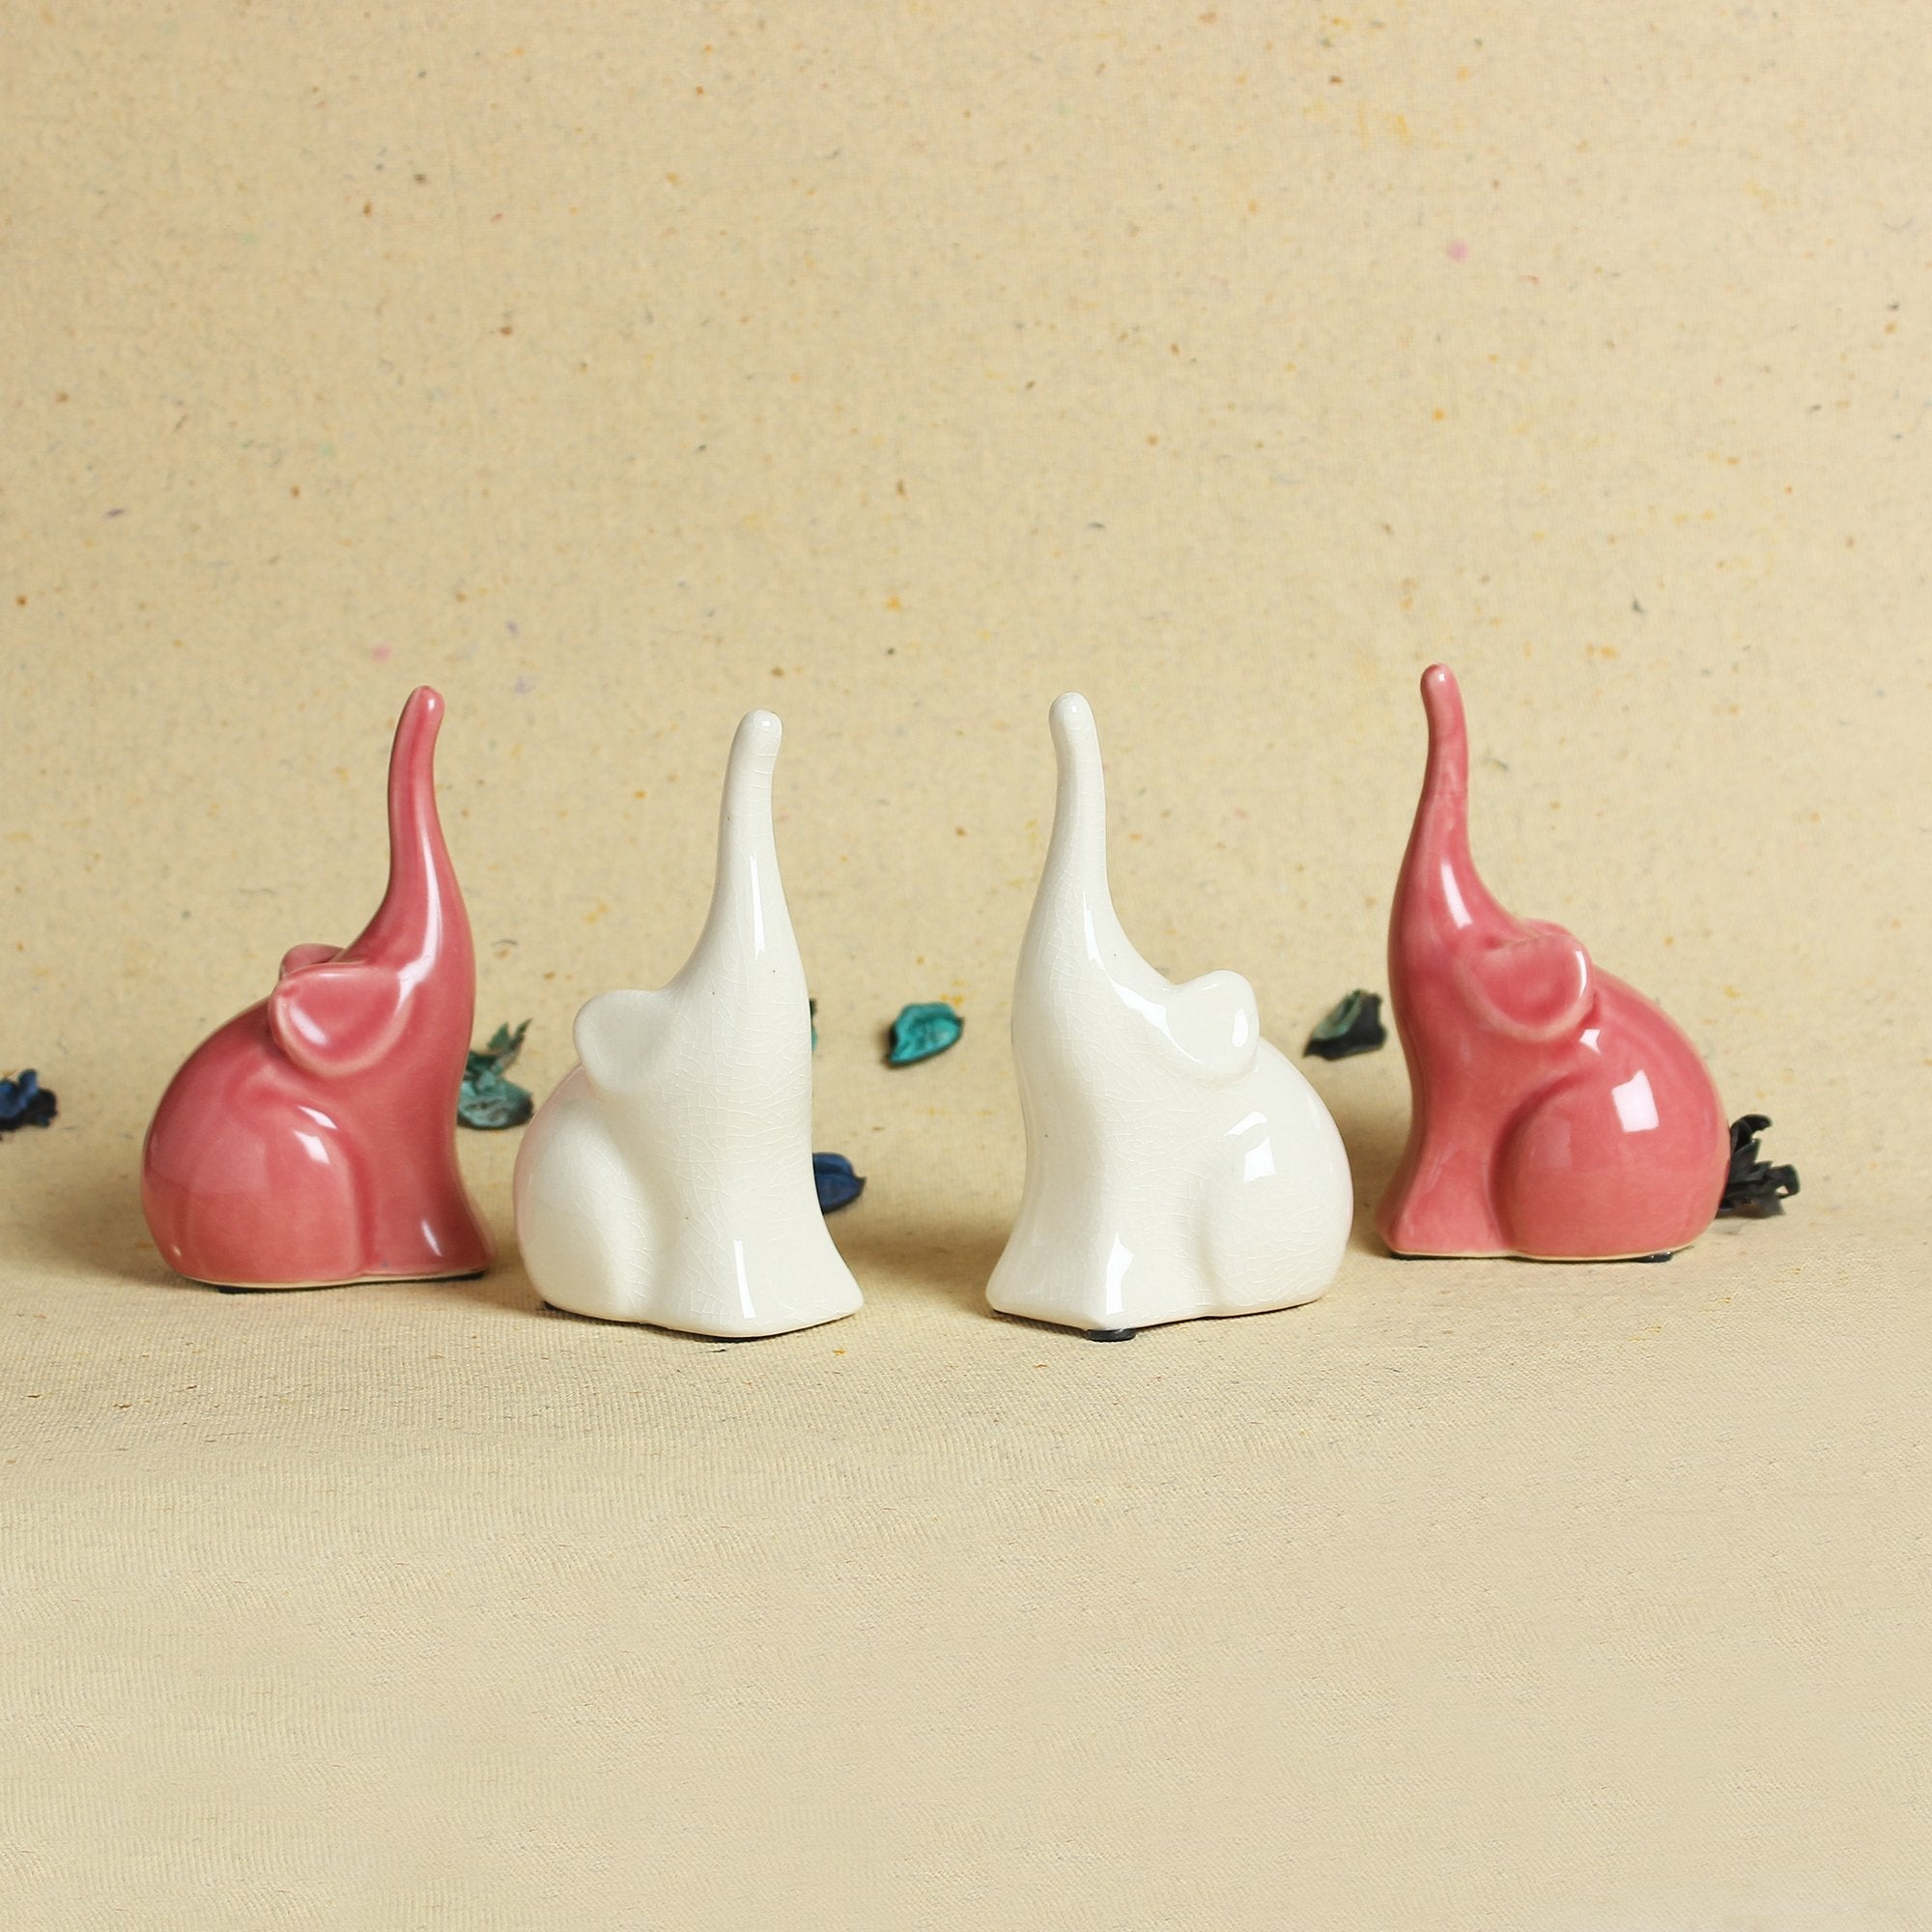 2 Small Elephants With Raised Tusk - Pink